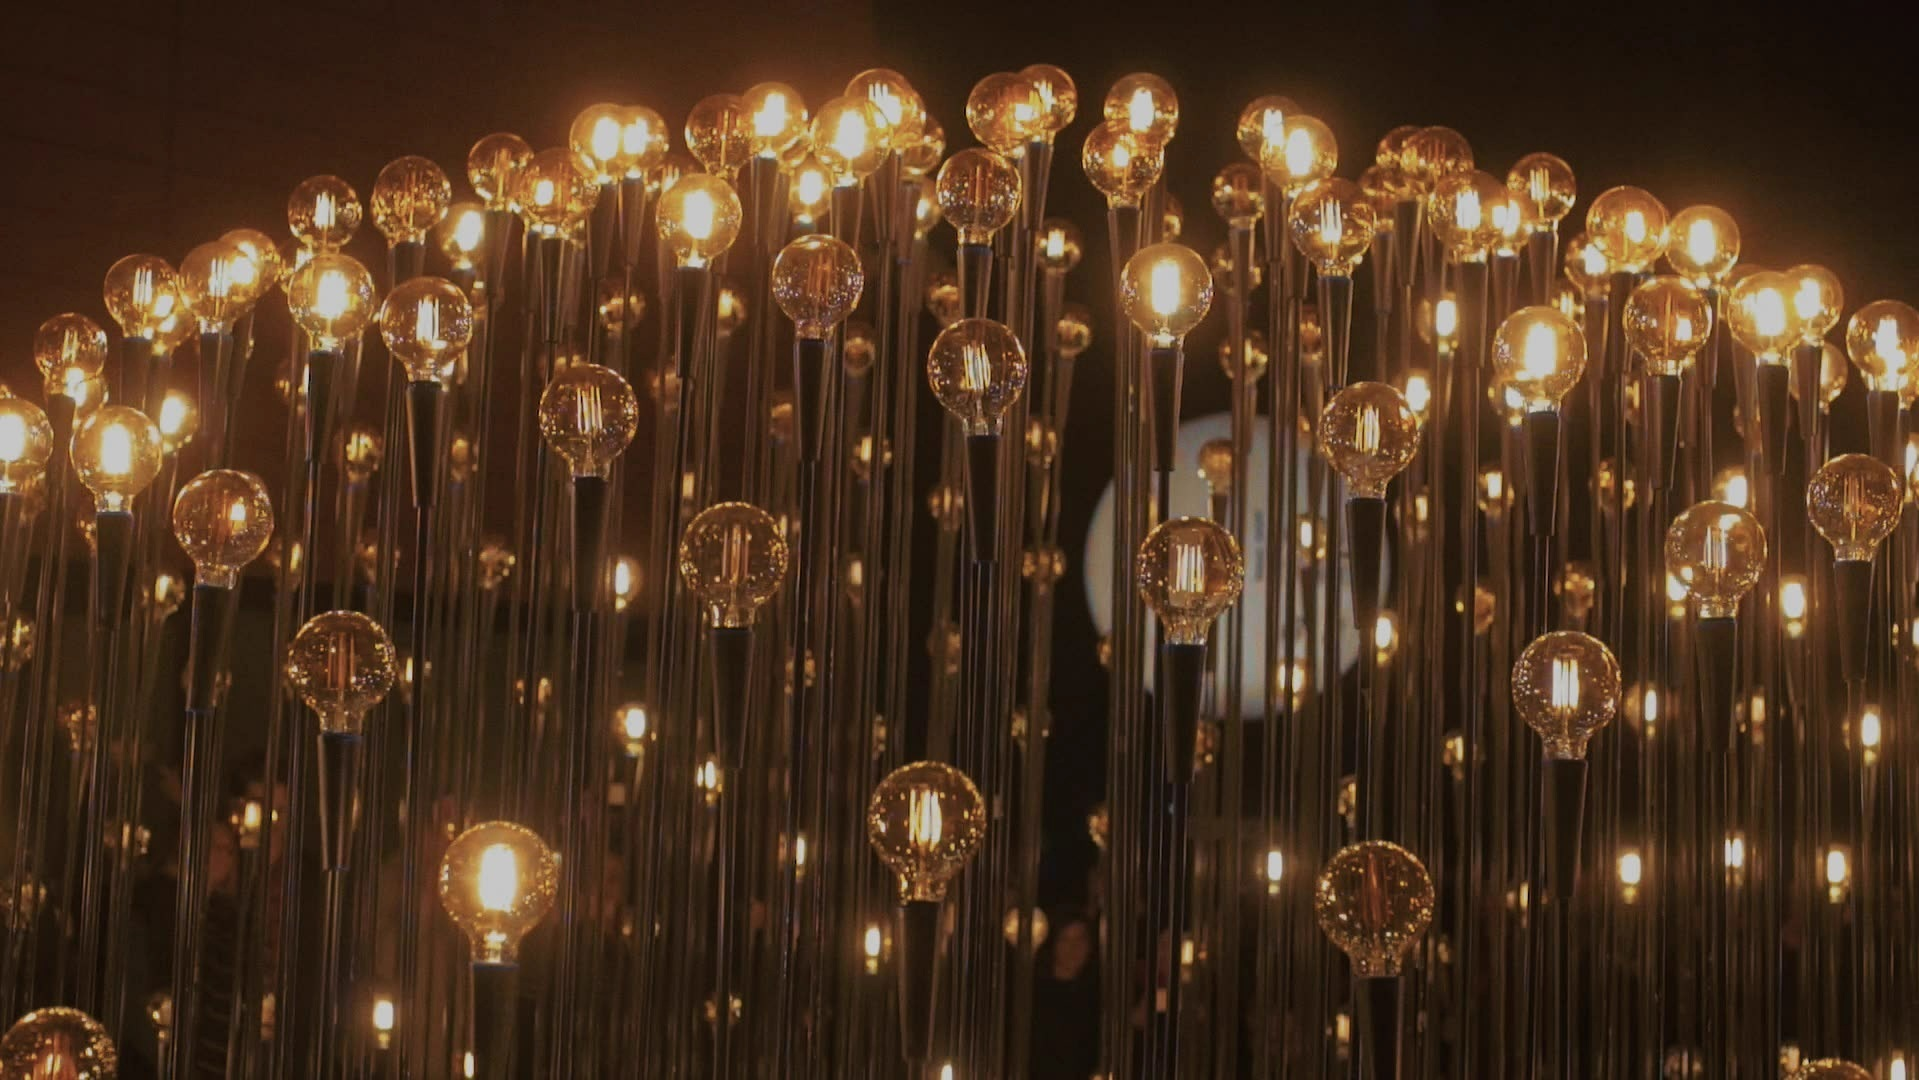 videoblocks-impressive-and-epic-futuristic-light-show-or-performance-with-multiple-vintage-retro-light-bulbs-beaming-in-darkness-represent-ideas-and-creativity-of-new-generation_HxM9CMcWdG.mov.00_00_26_21.Still001.jpg